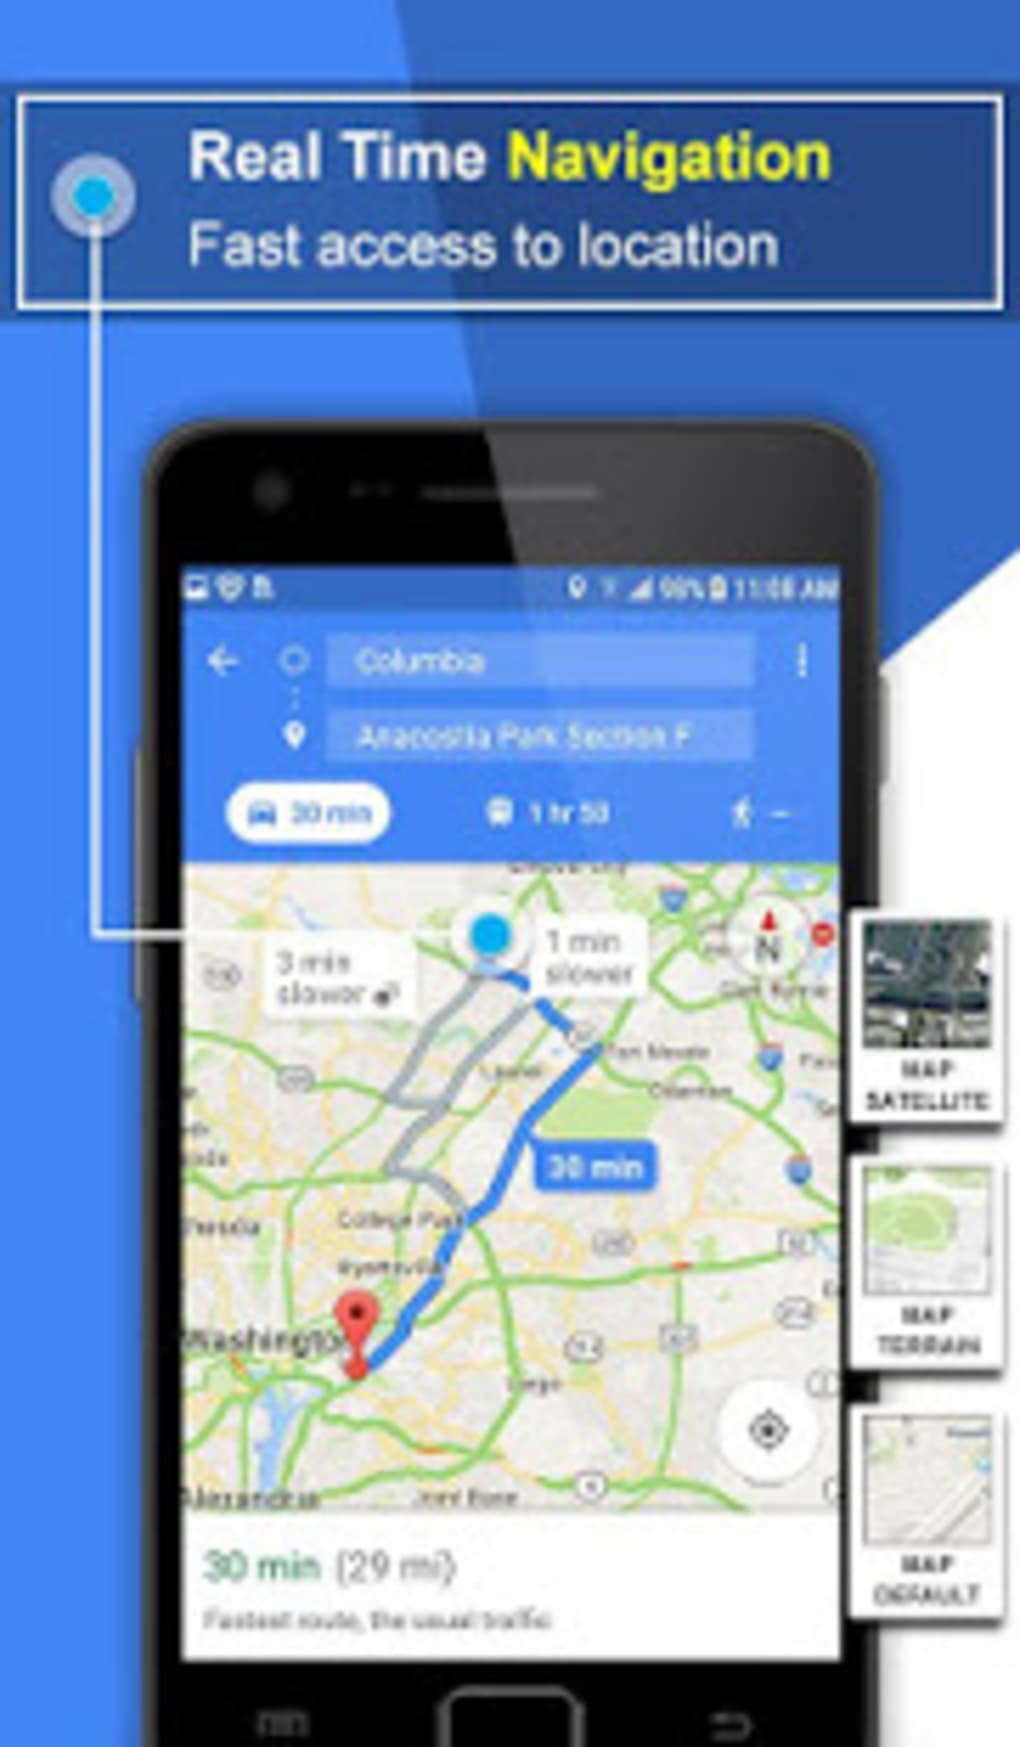 GPS Voice Navigation Route Finder- Speedometer for Android